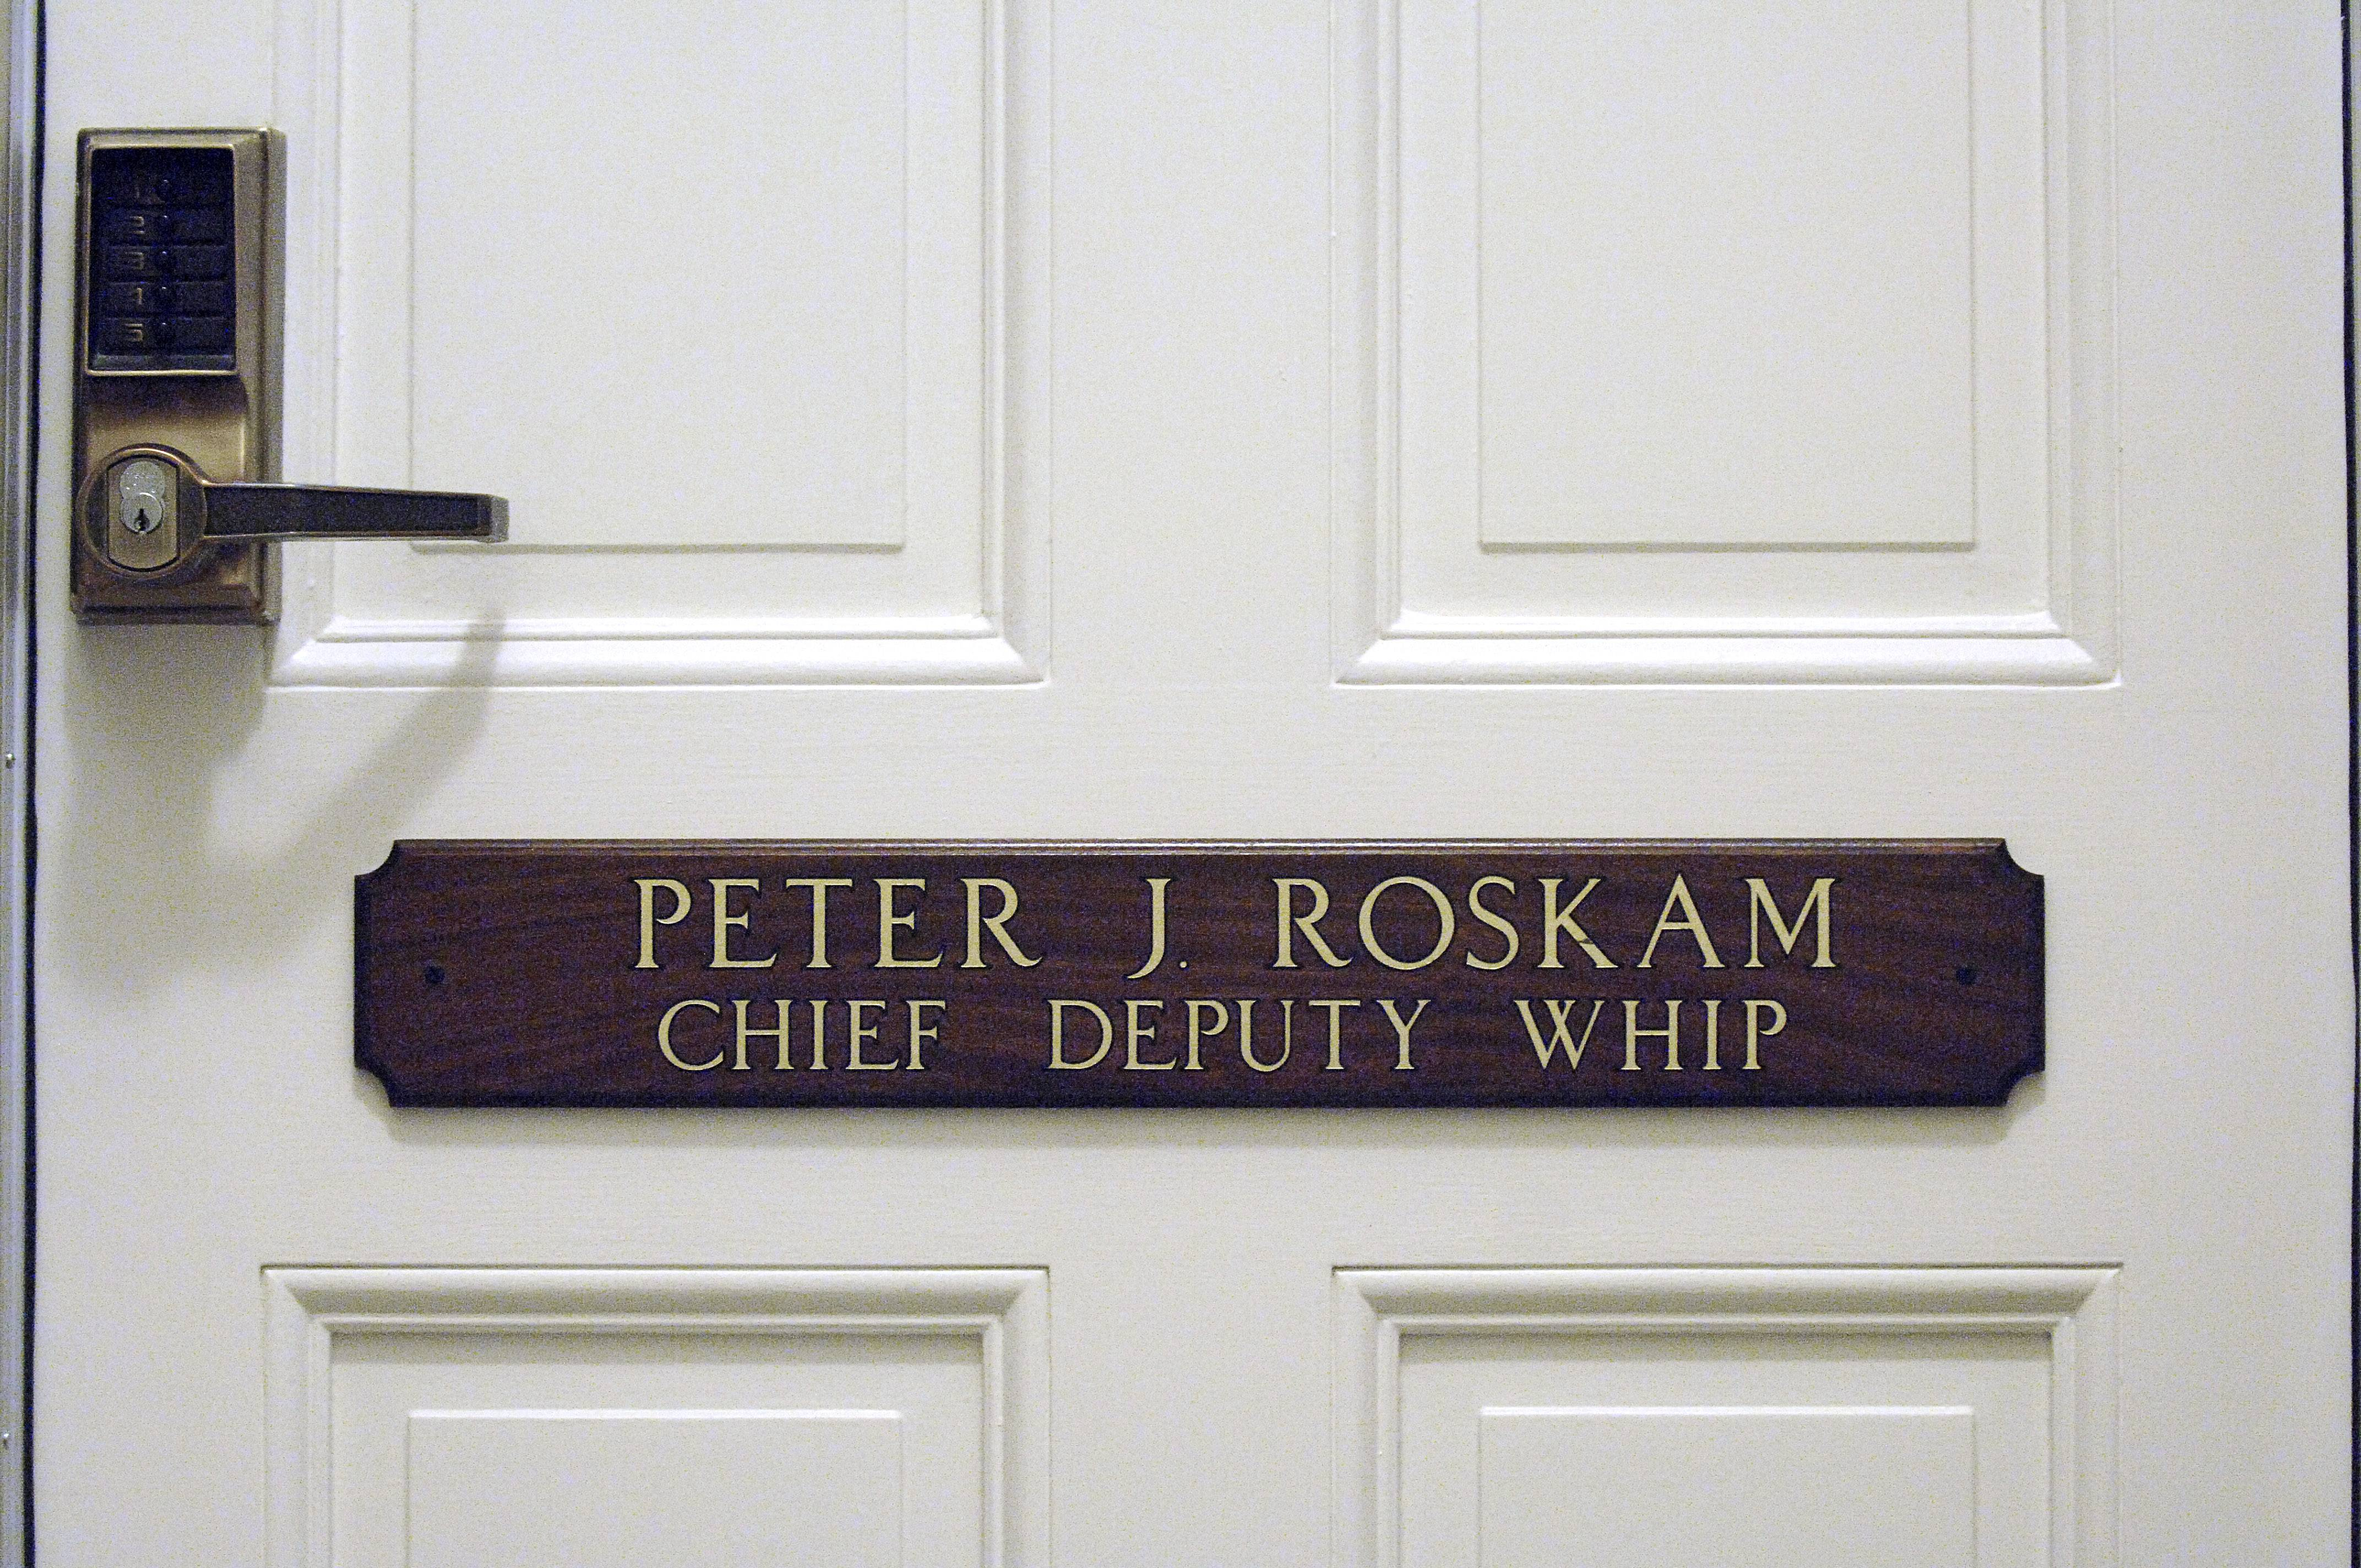 U.S. Rep. Peter Roskam of Wheaton will vacate an office in the Capitol after losing a race to move up last week.